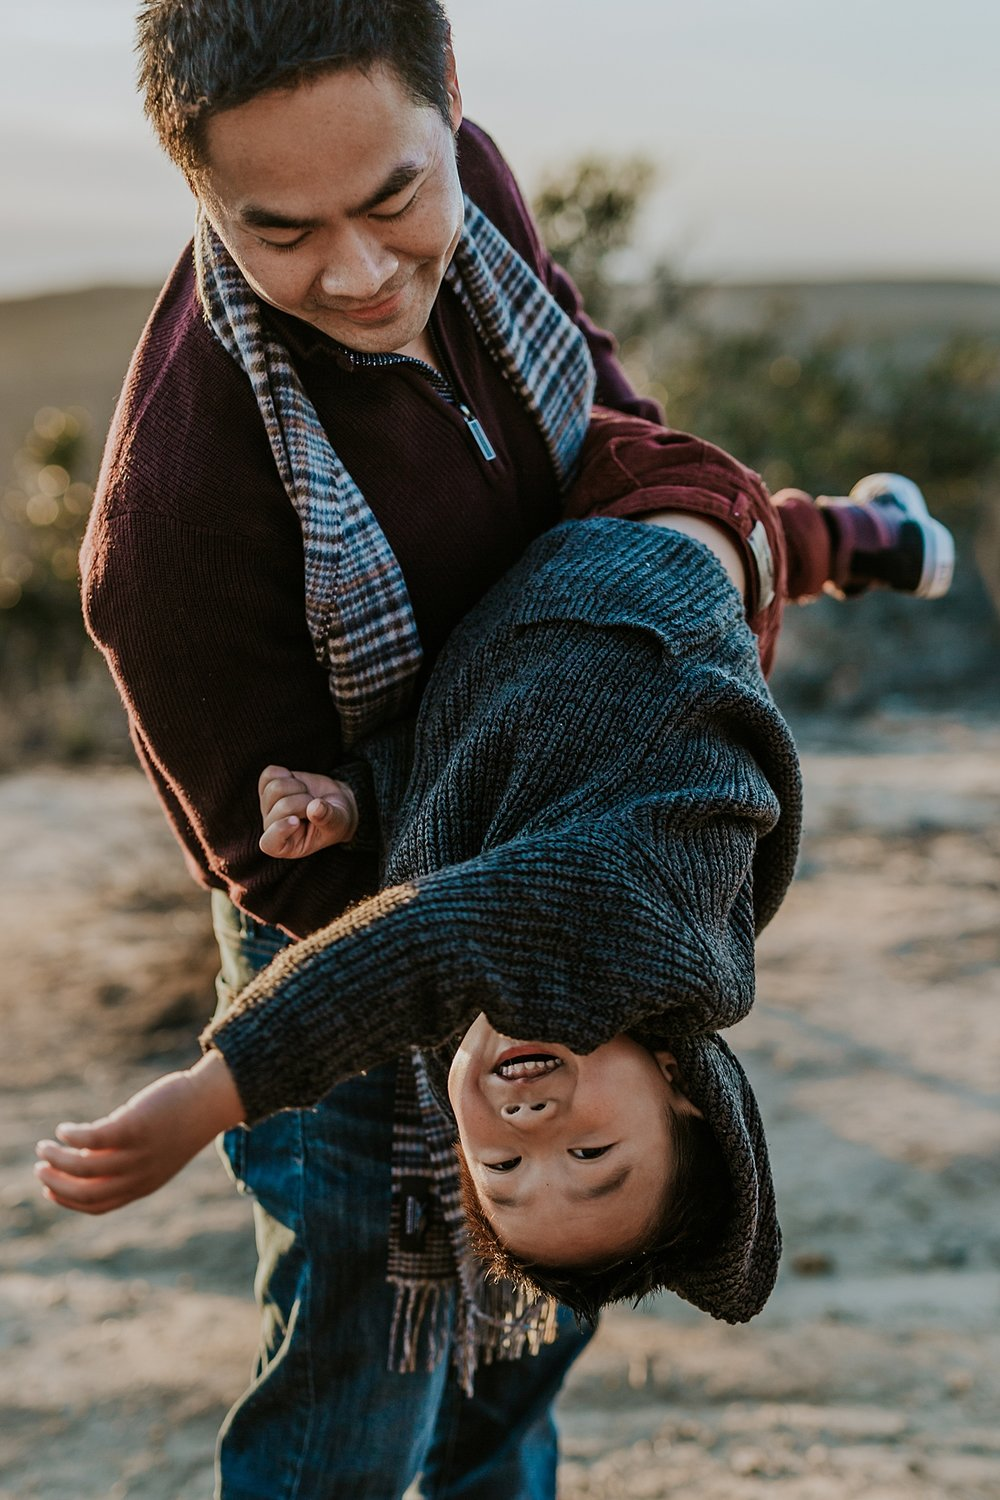 Orange County family photographer. Candid photo of dad swinging his son around during outdoor during family photo shoot at Top of the World Laguna Beach CA